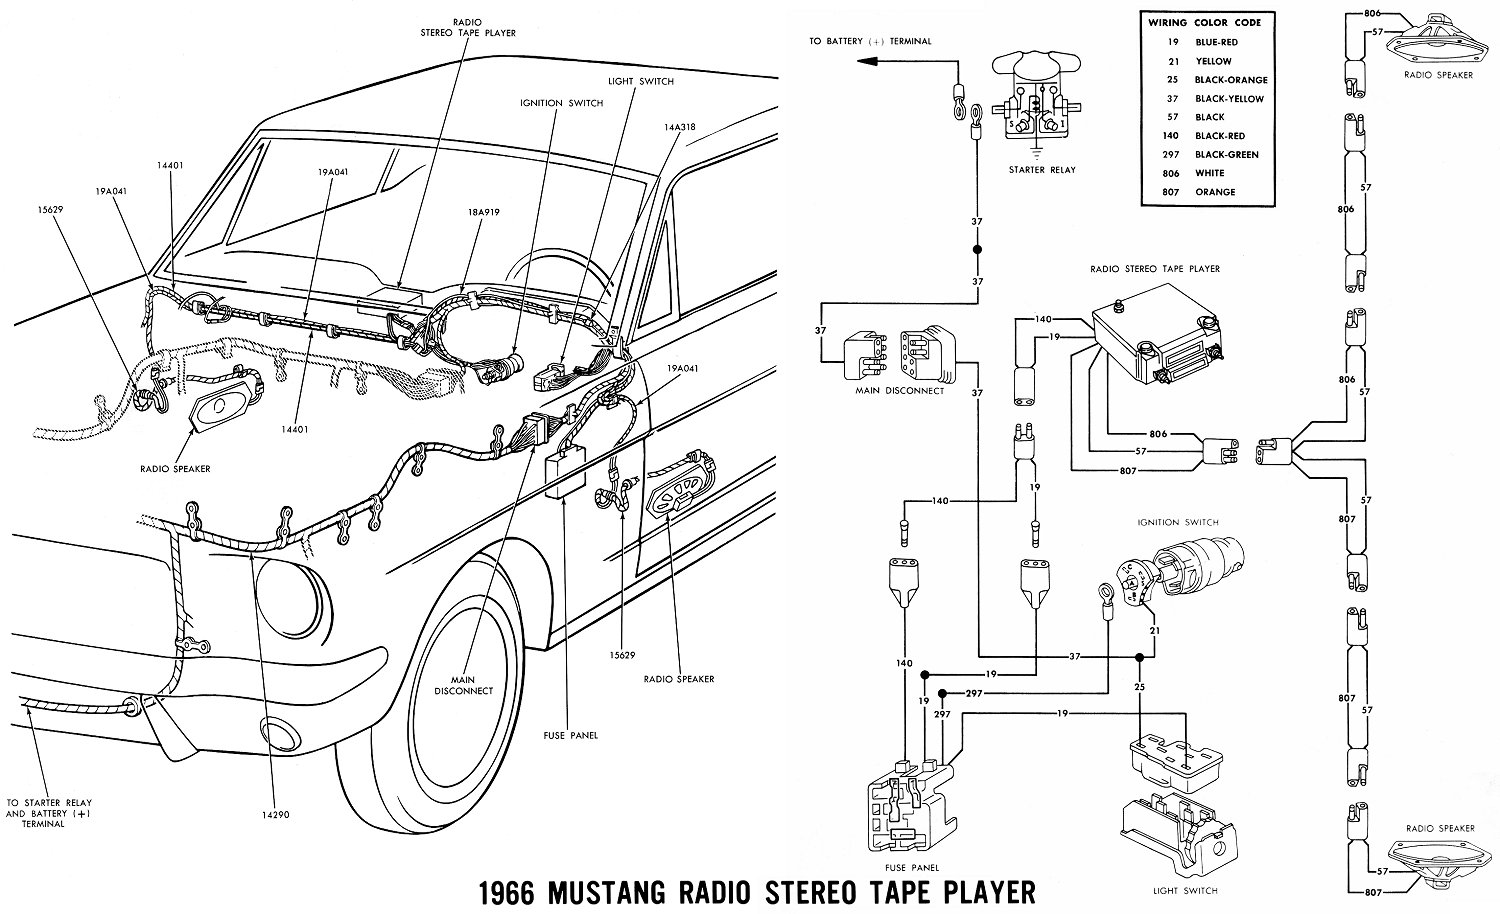 1966 Mustang Wiring Diagrams Average Joe Restoration Ford Radio Diagram Internal Sm66ste